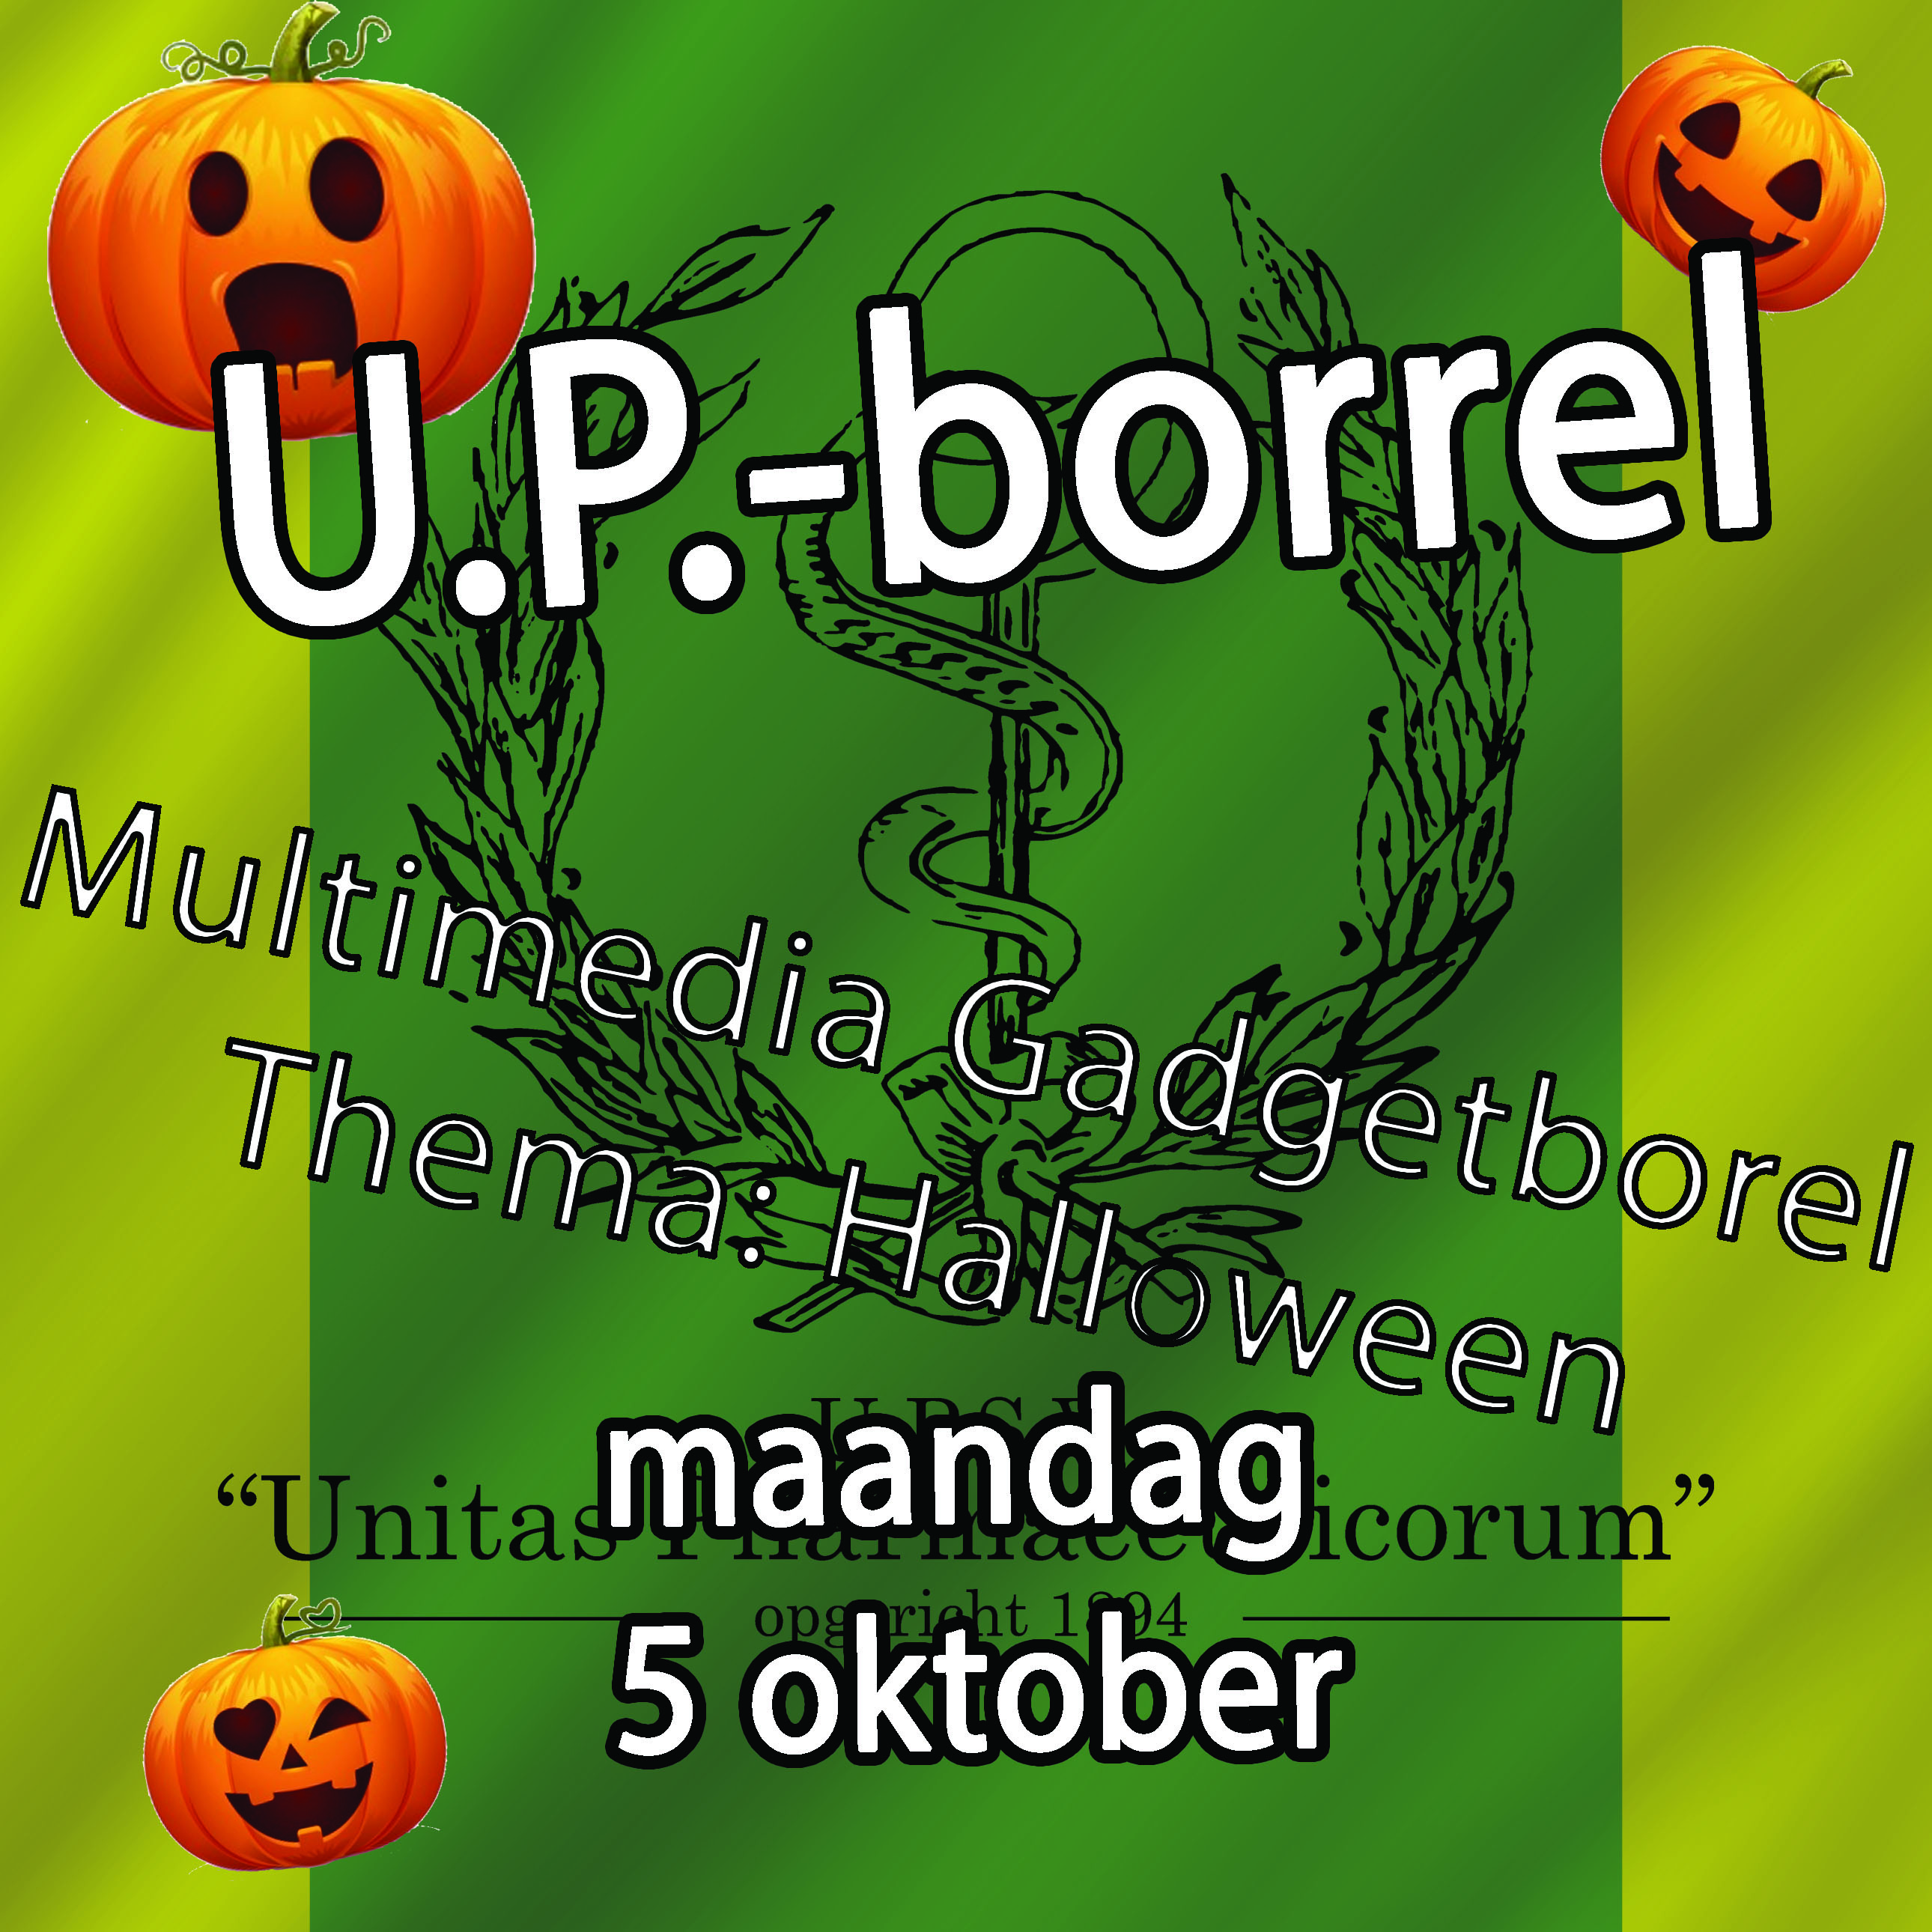 Borrel 5 oktober Multimedia Gadgetborrel Halloween 8